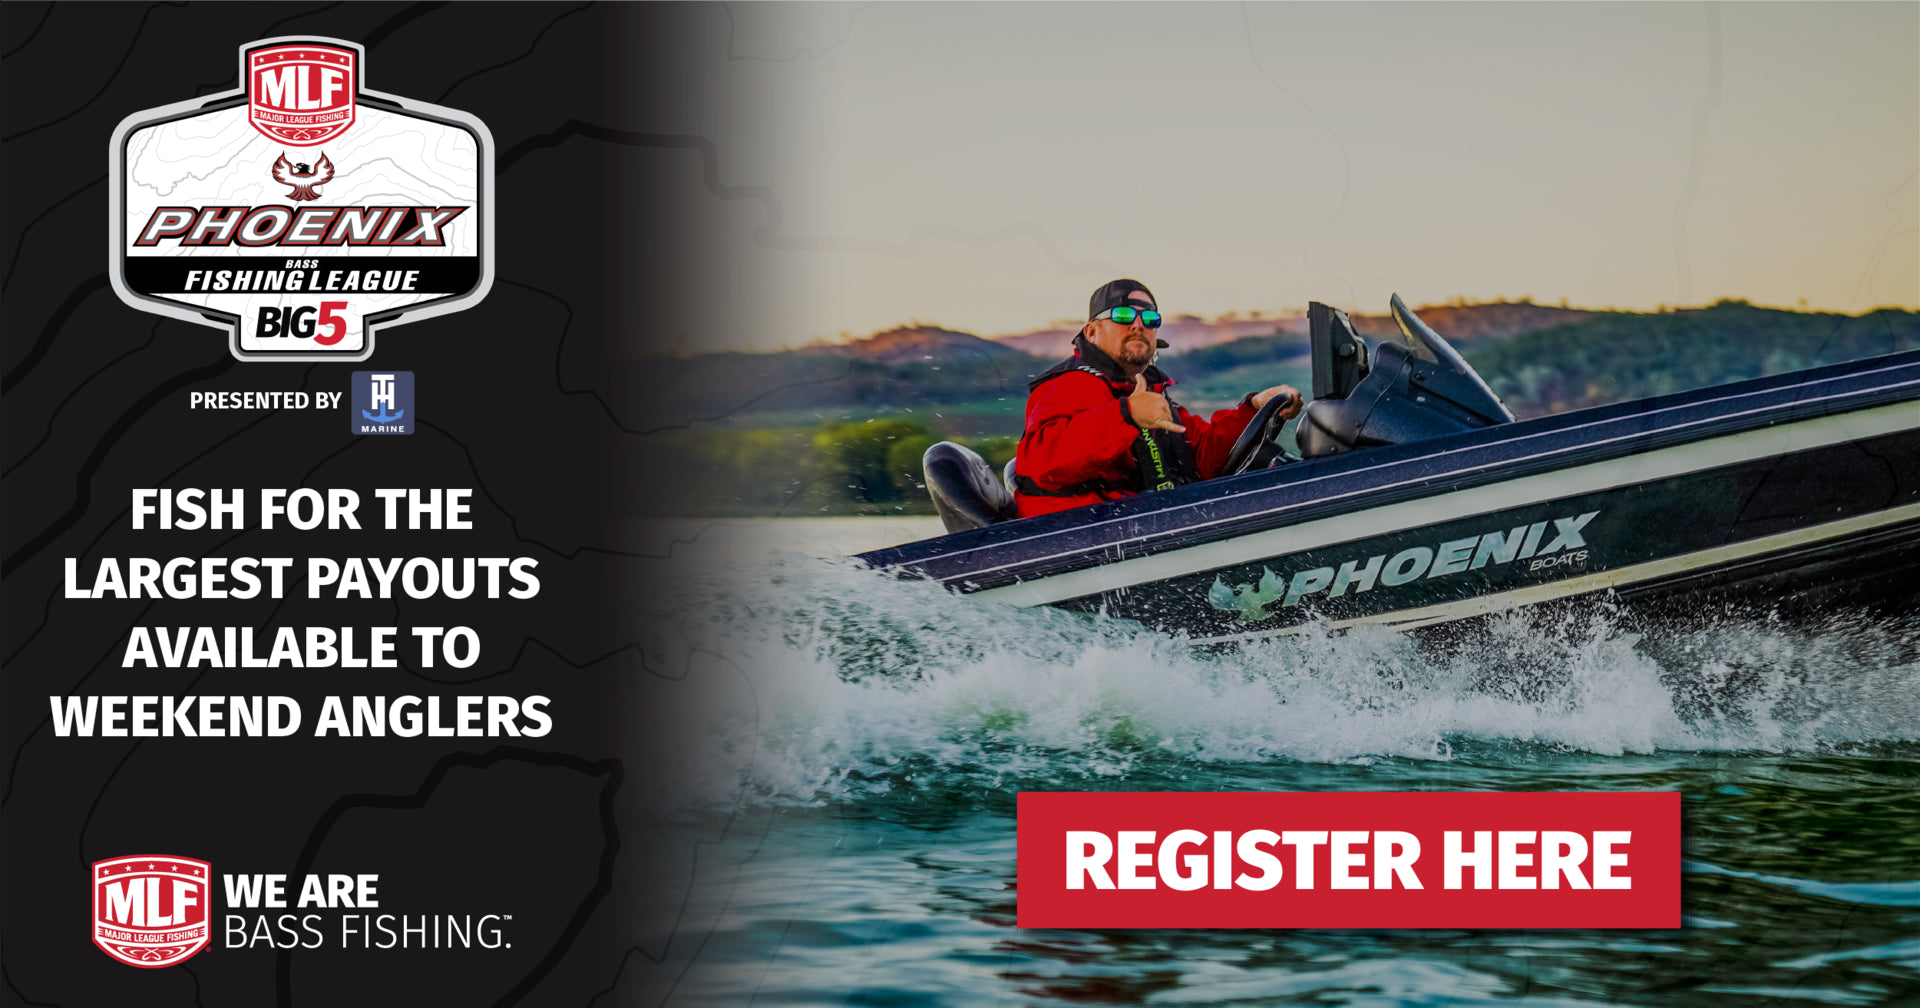 Register for a Phoenix Bass Fishing League tournament online.